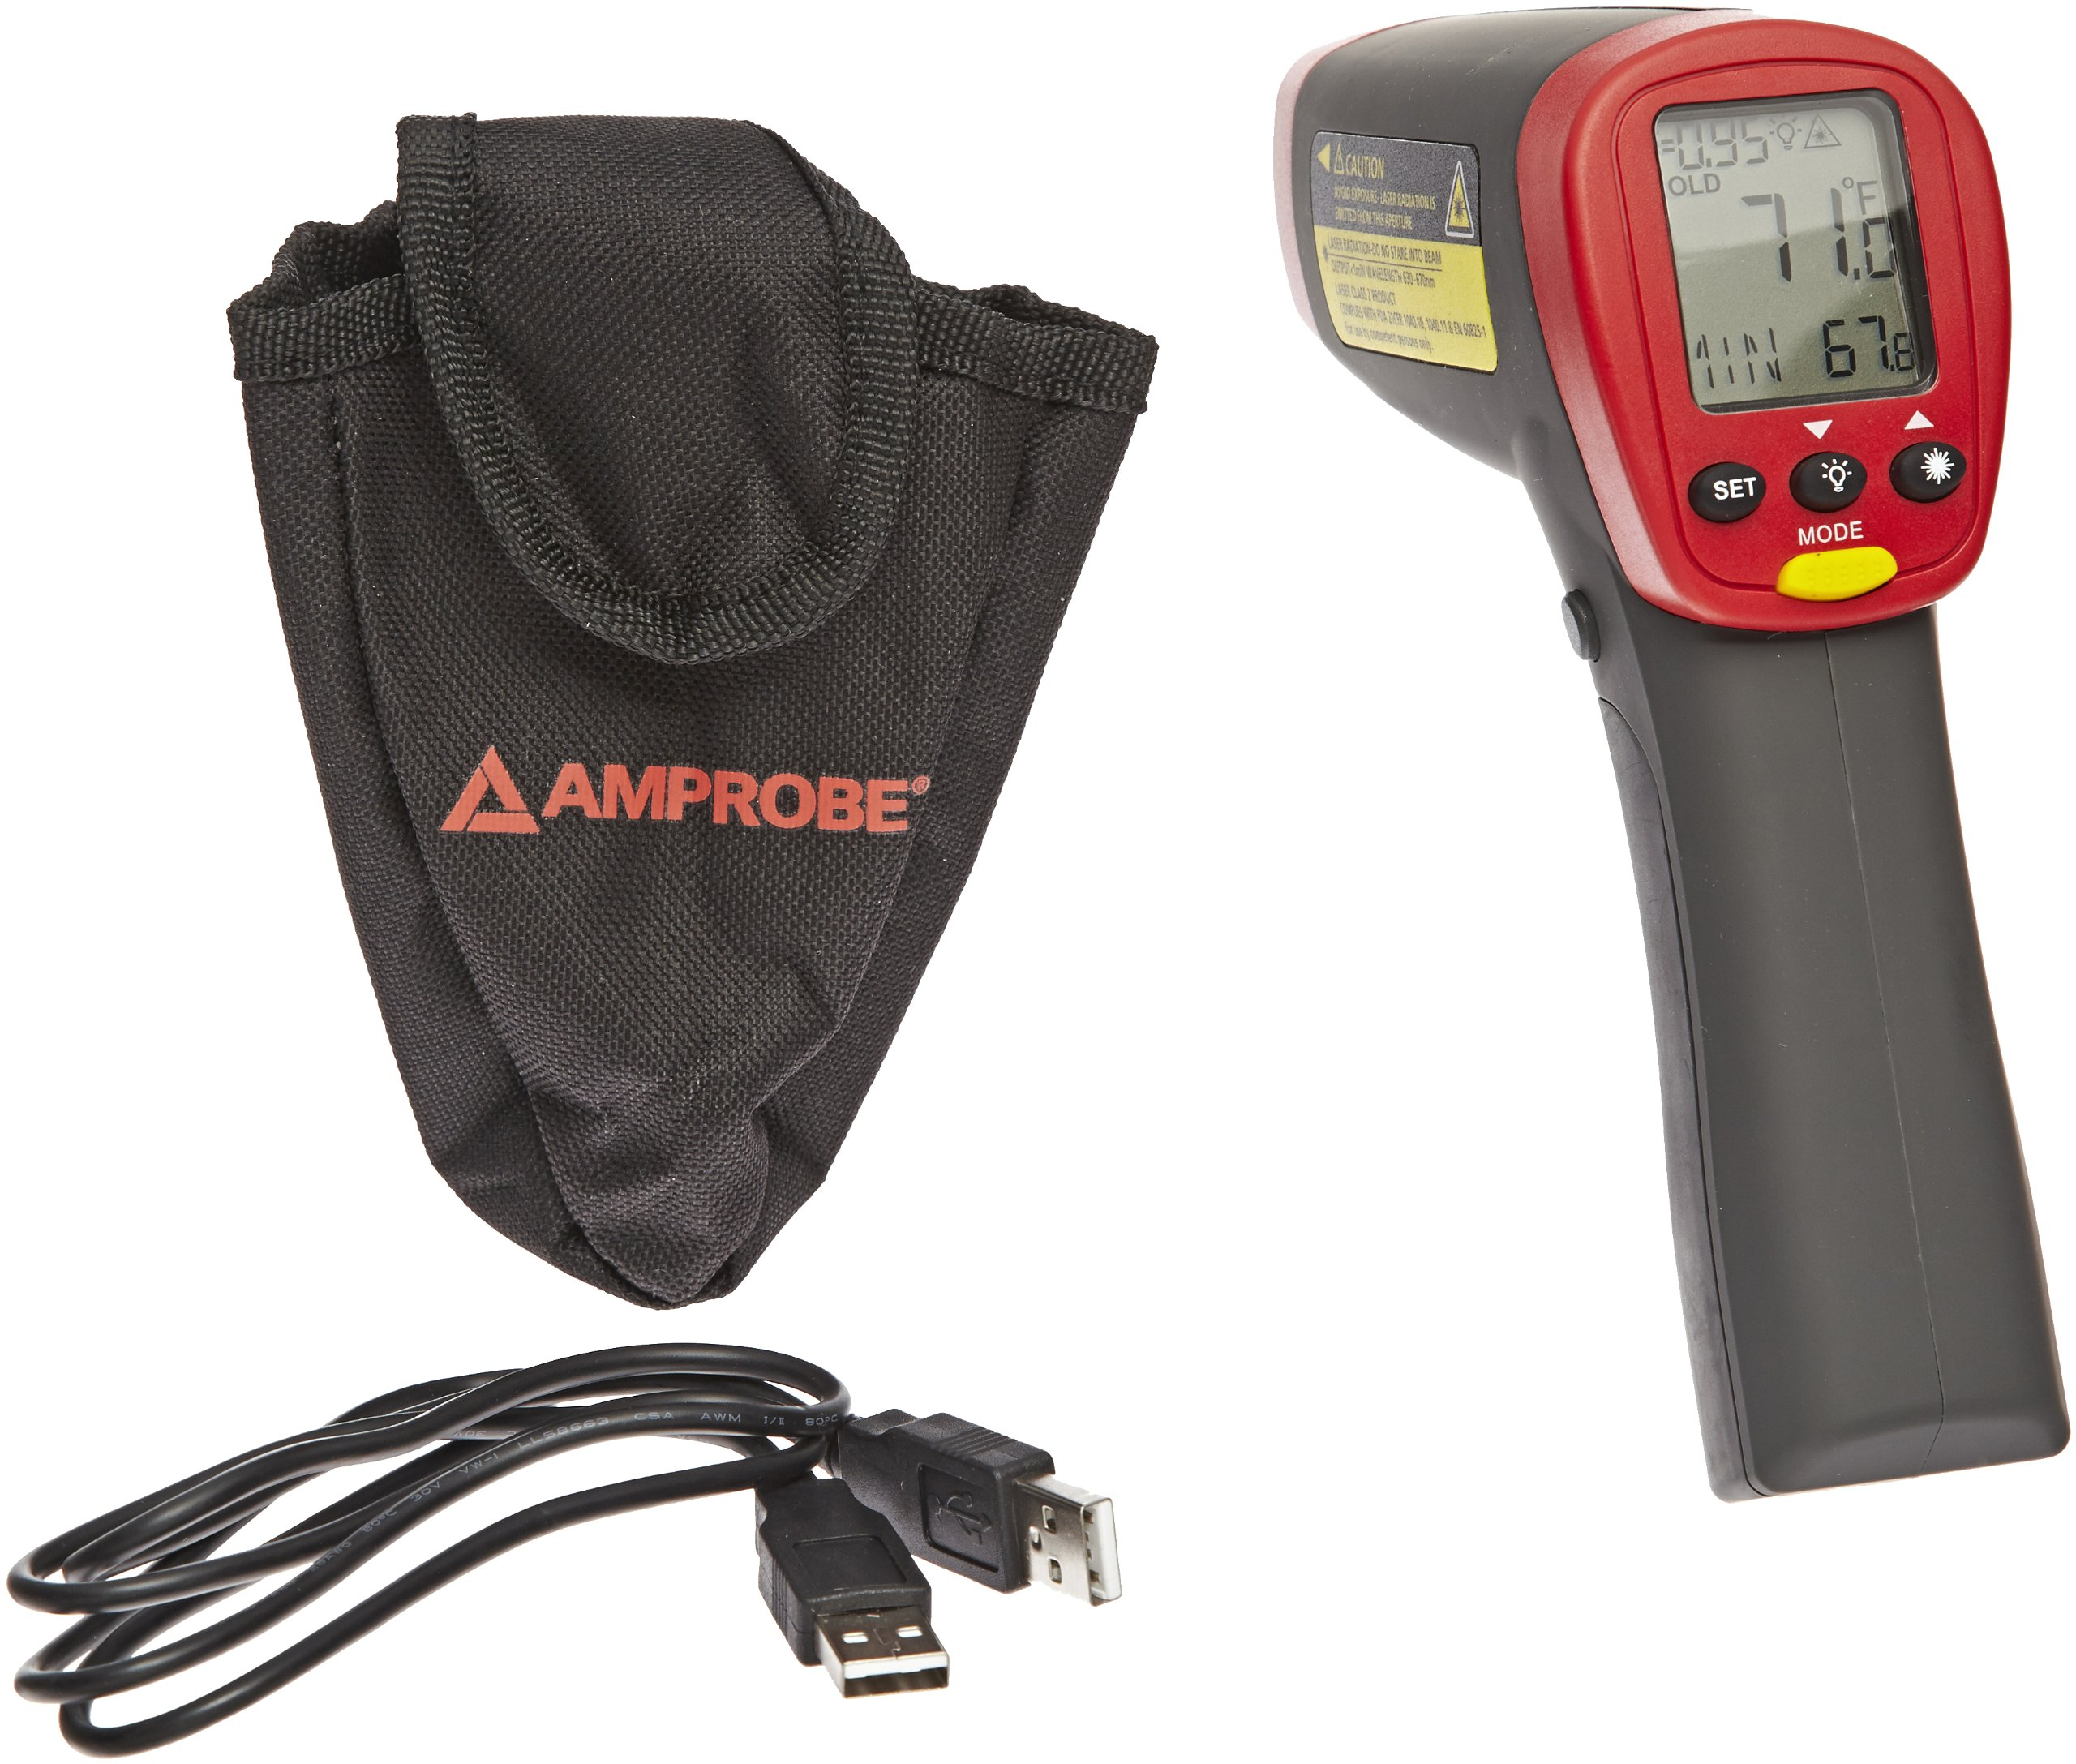 Amprobe IR-712 Infrared Thermometer - 0F to 1022F, 12:1 by Amprobe (Image #2)